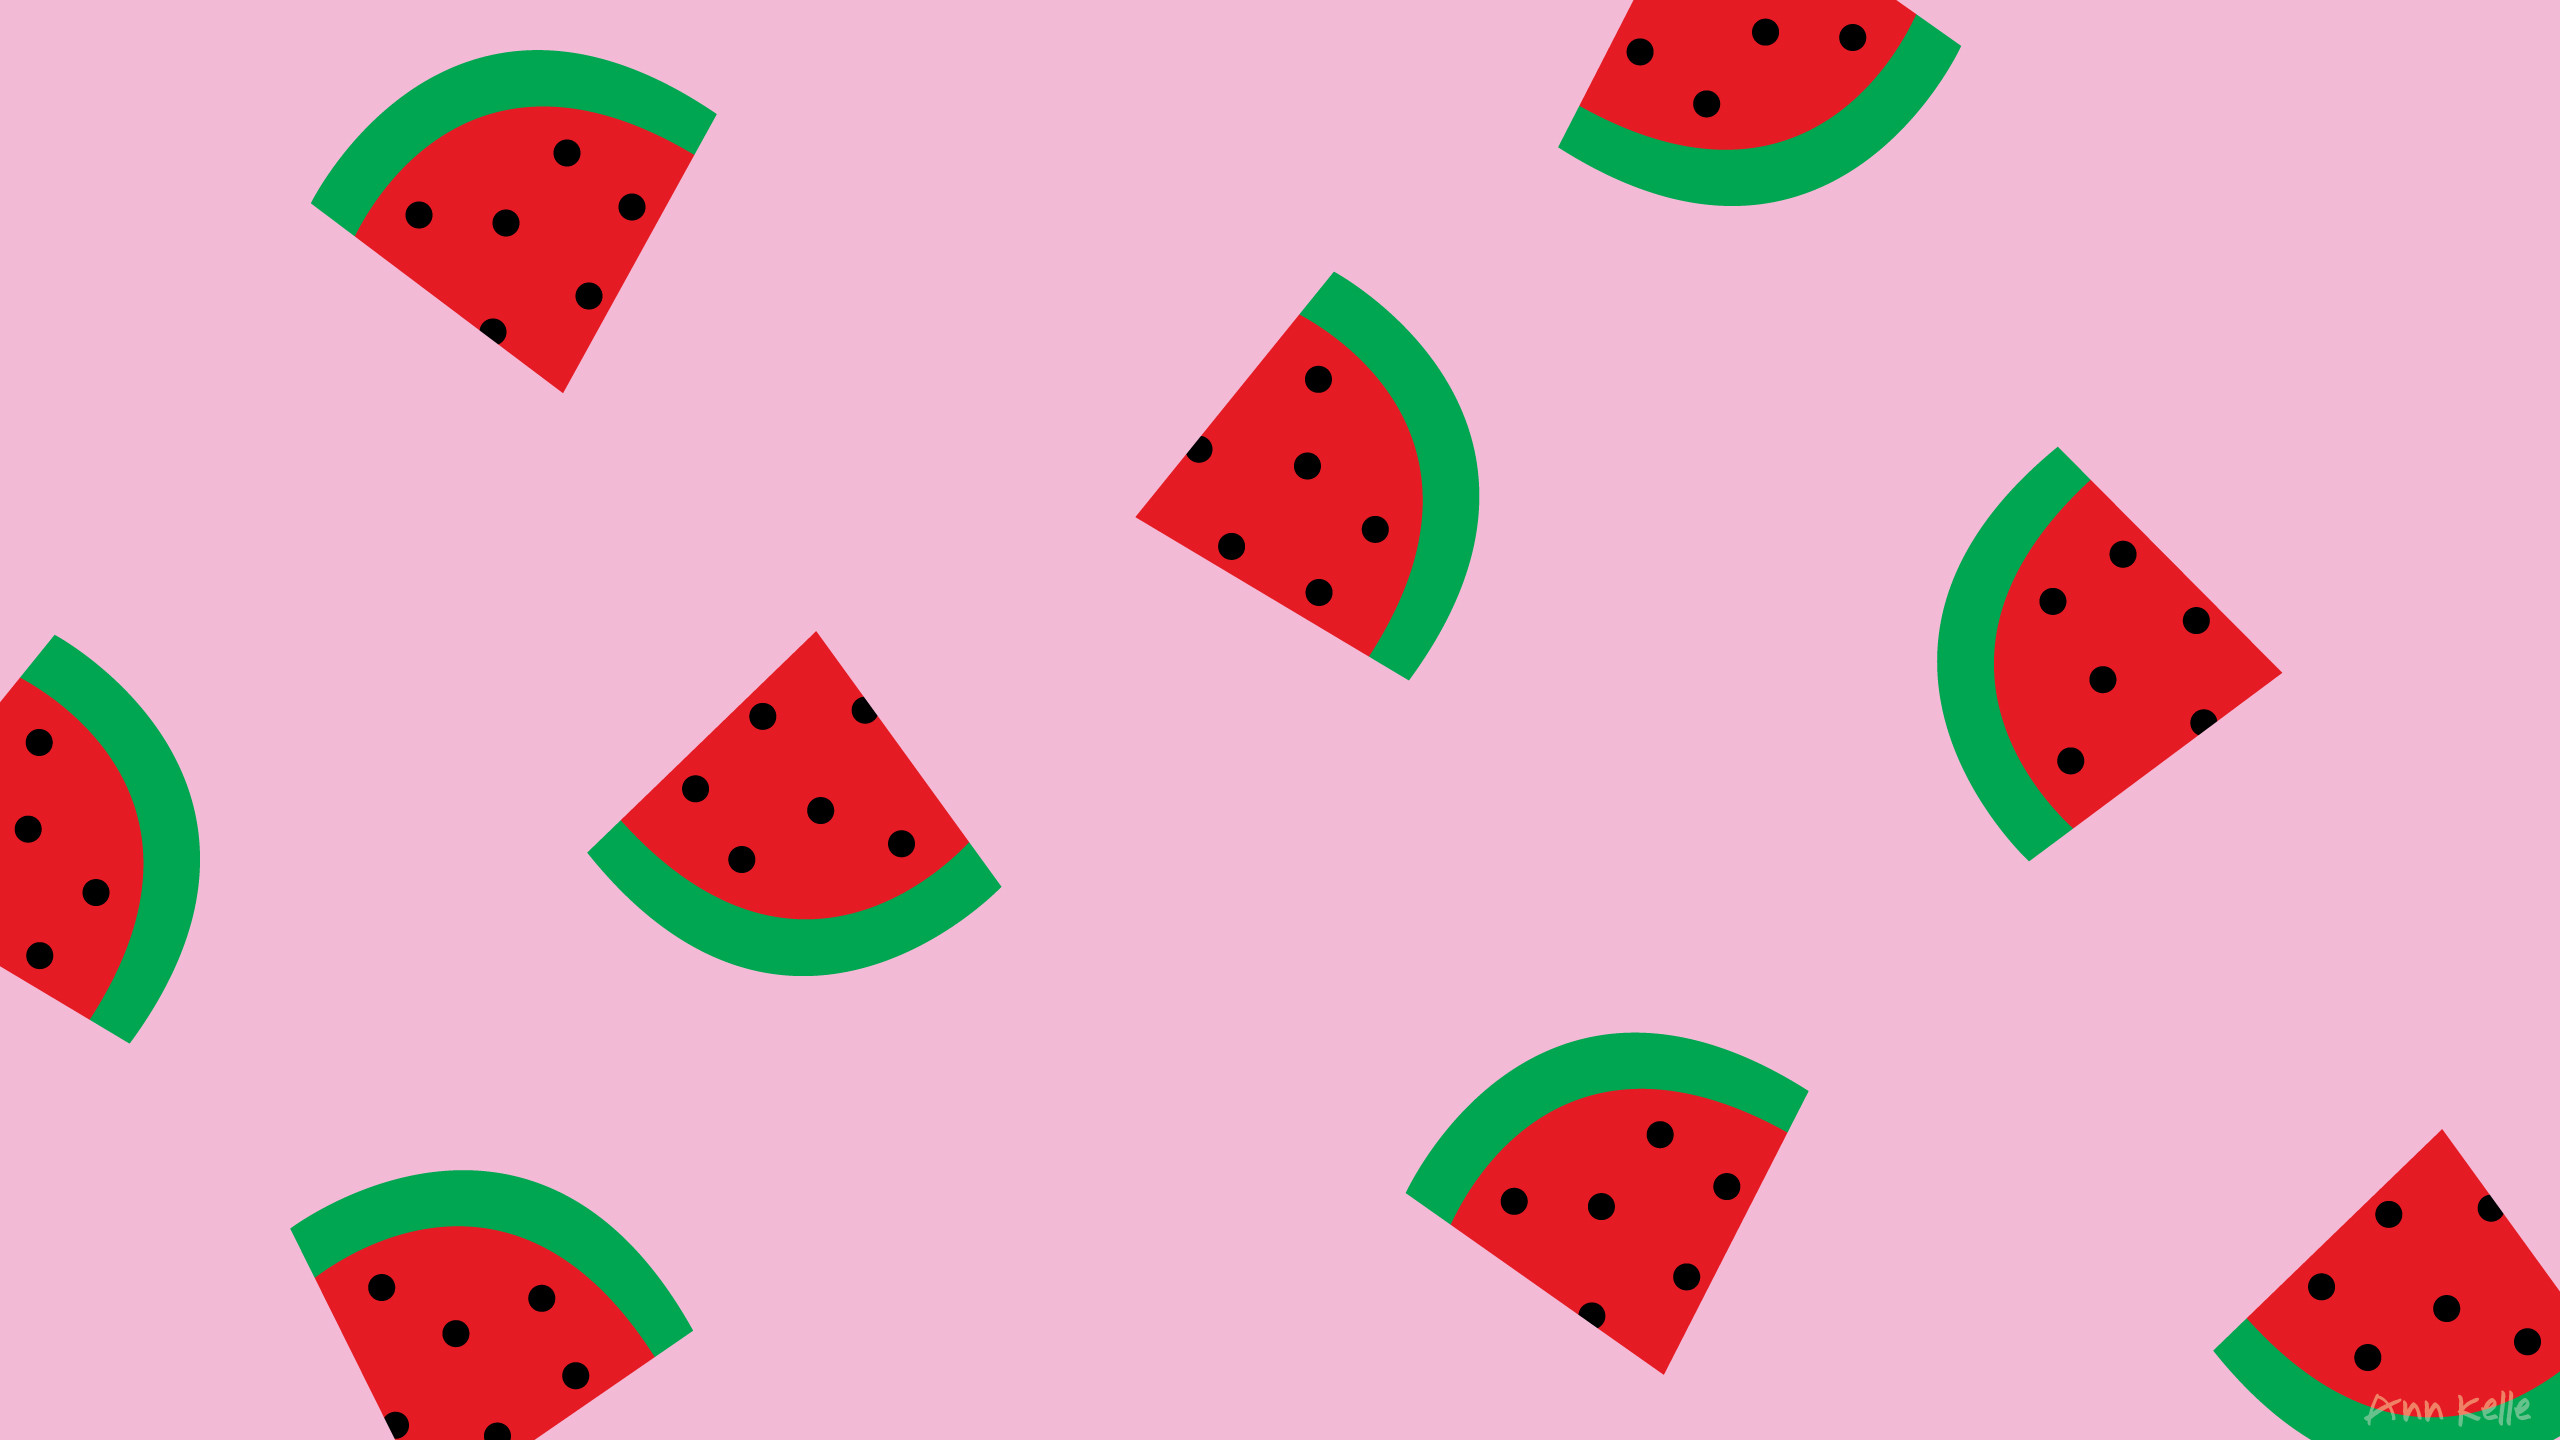 207 2072098 78 watermelon hd wallpapers desktop background watermelon